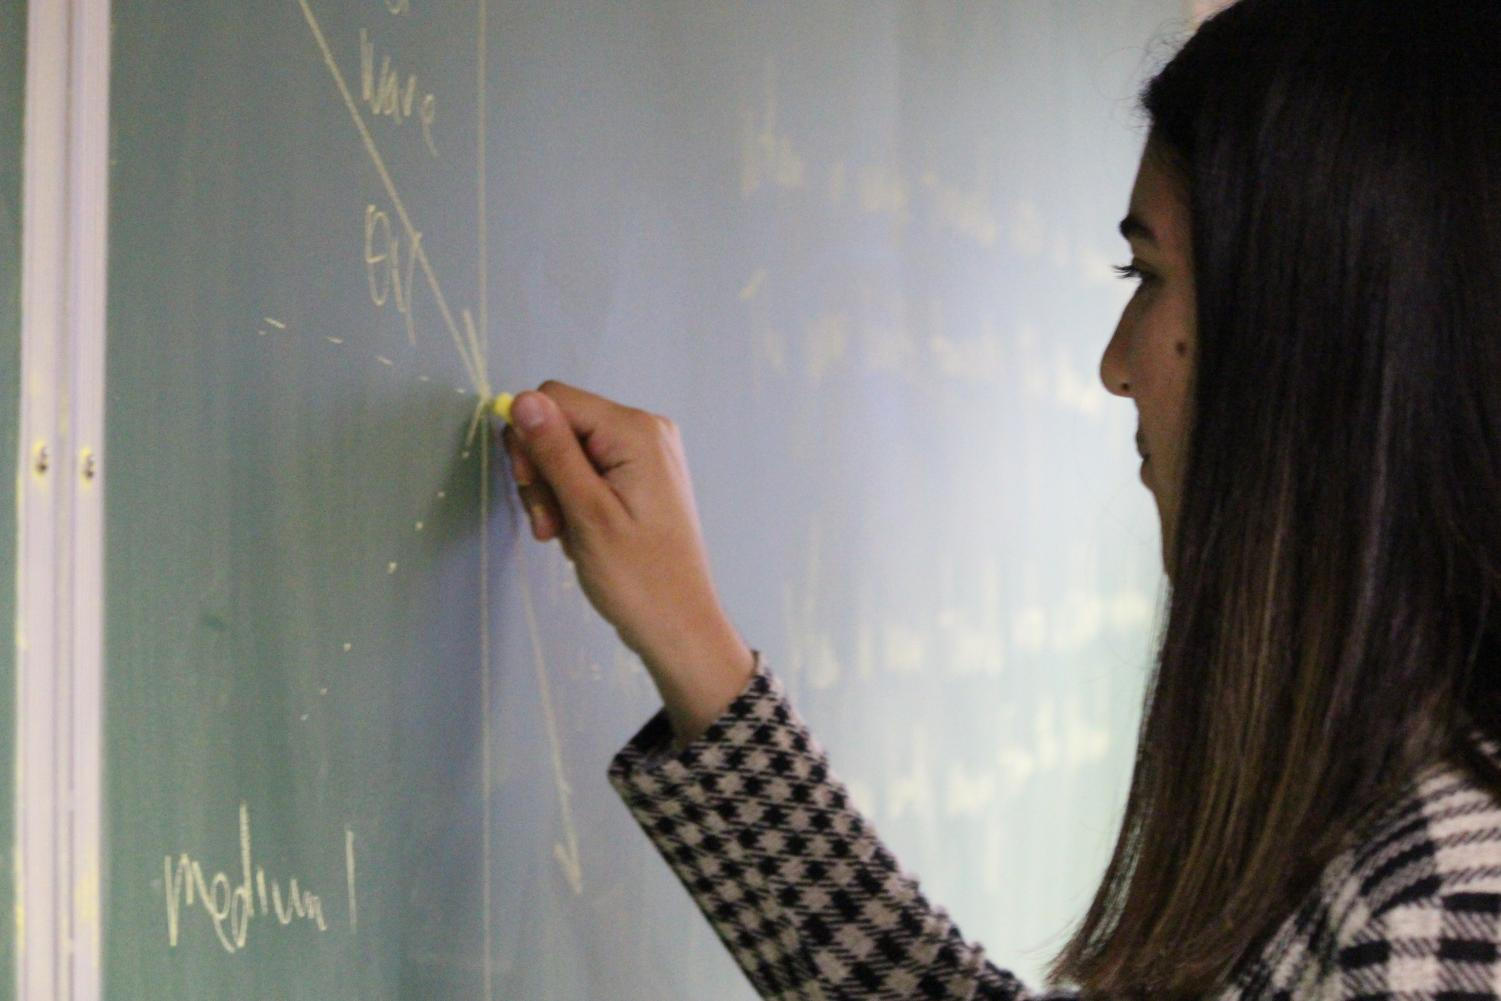 Shayda Moezzi, 11, figures out a physics problem in her AP physics class.